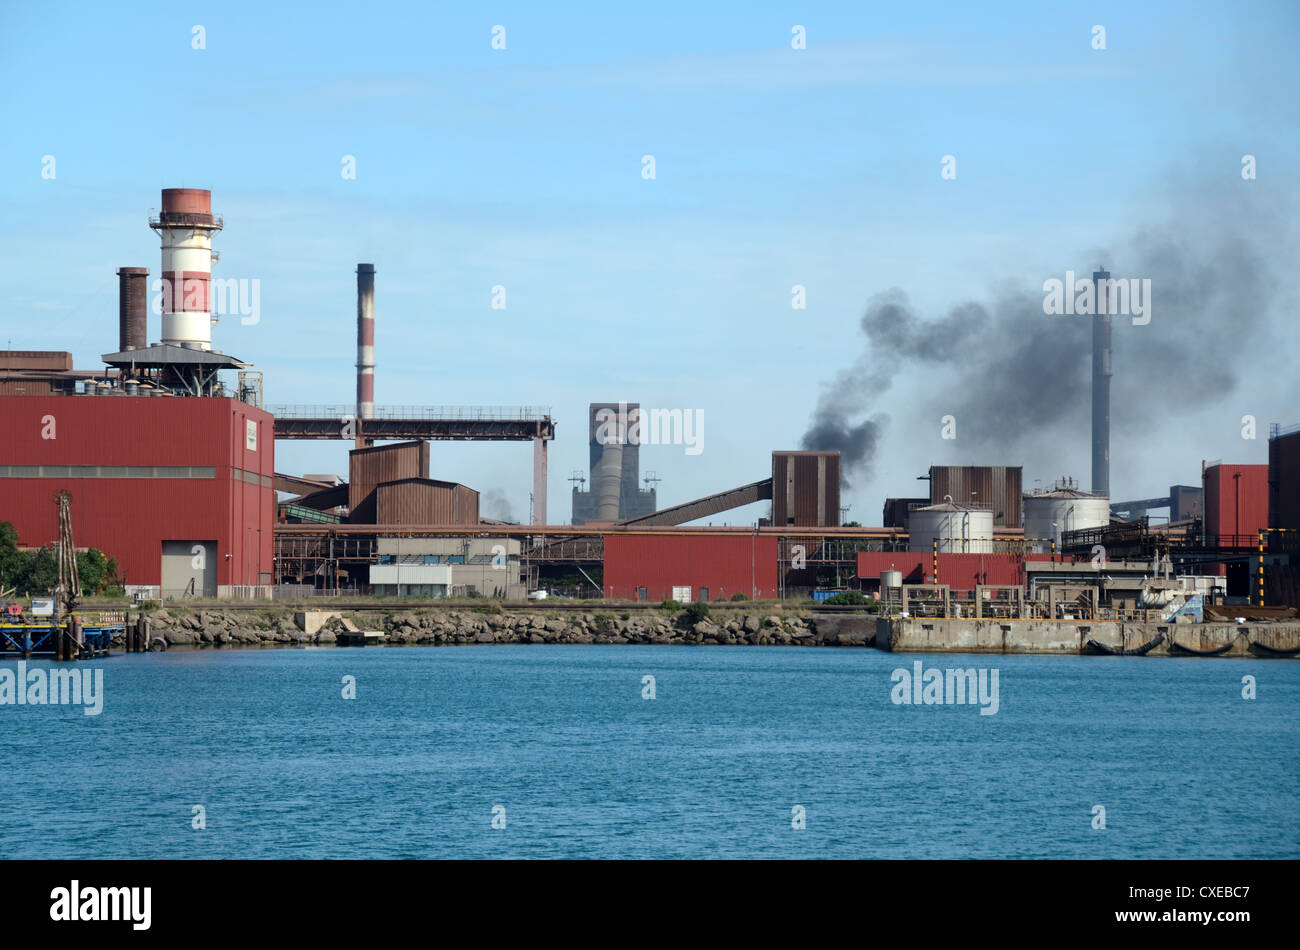 Cheminées et la pollution de l'aciérie ArcelorMittal Martigues Port Autonome de Marseille ou Marseille Photo Stock